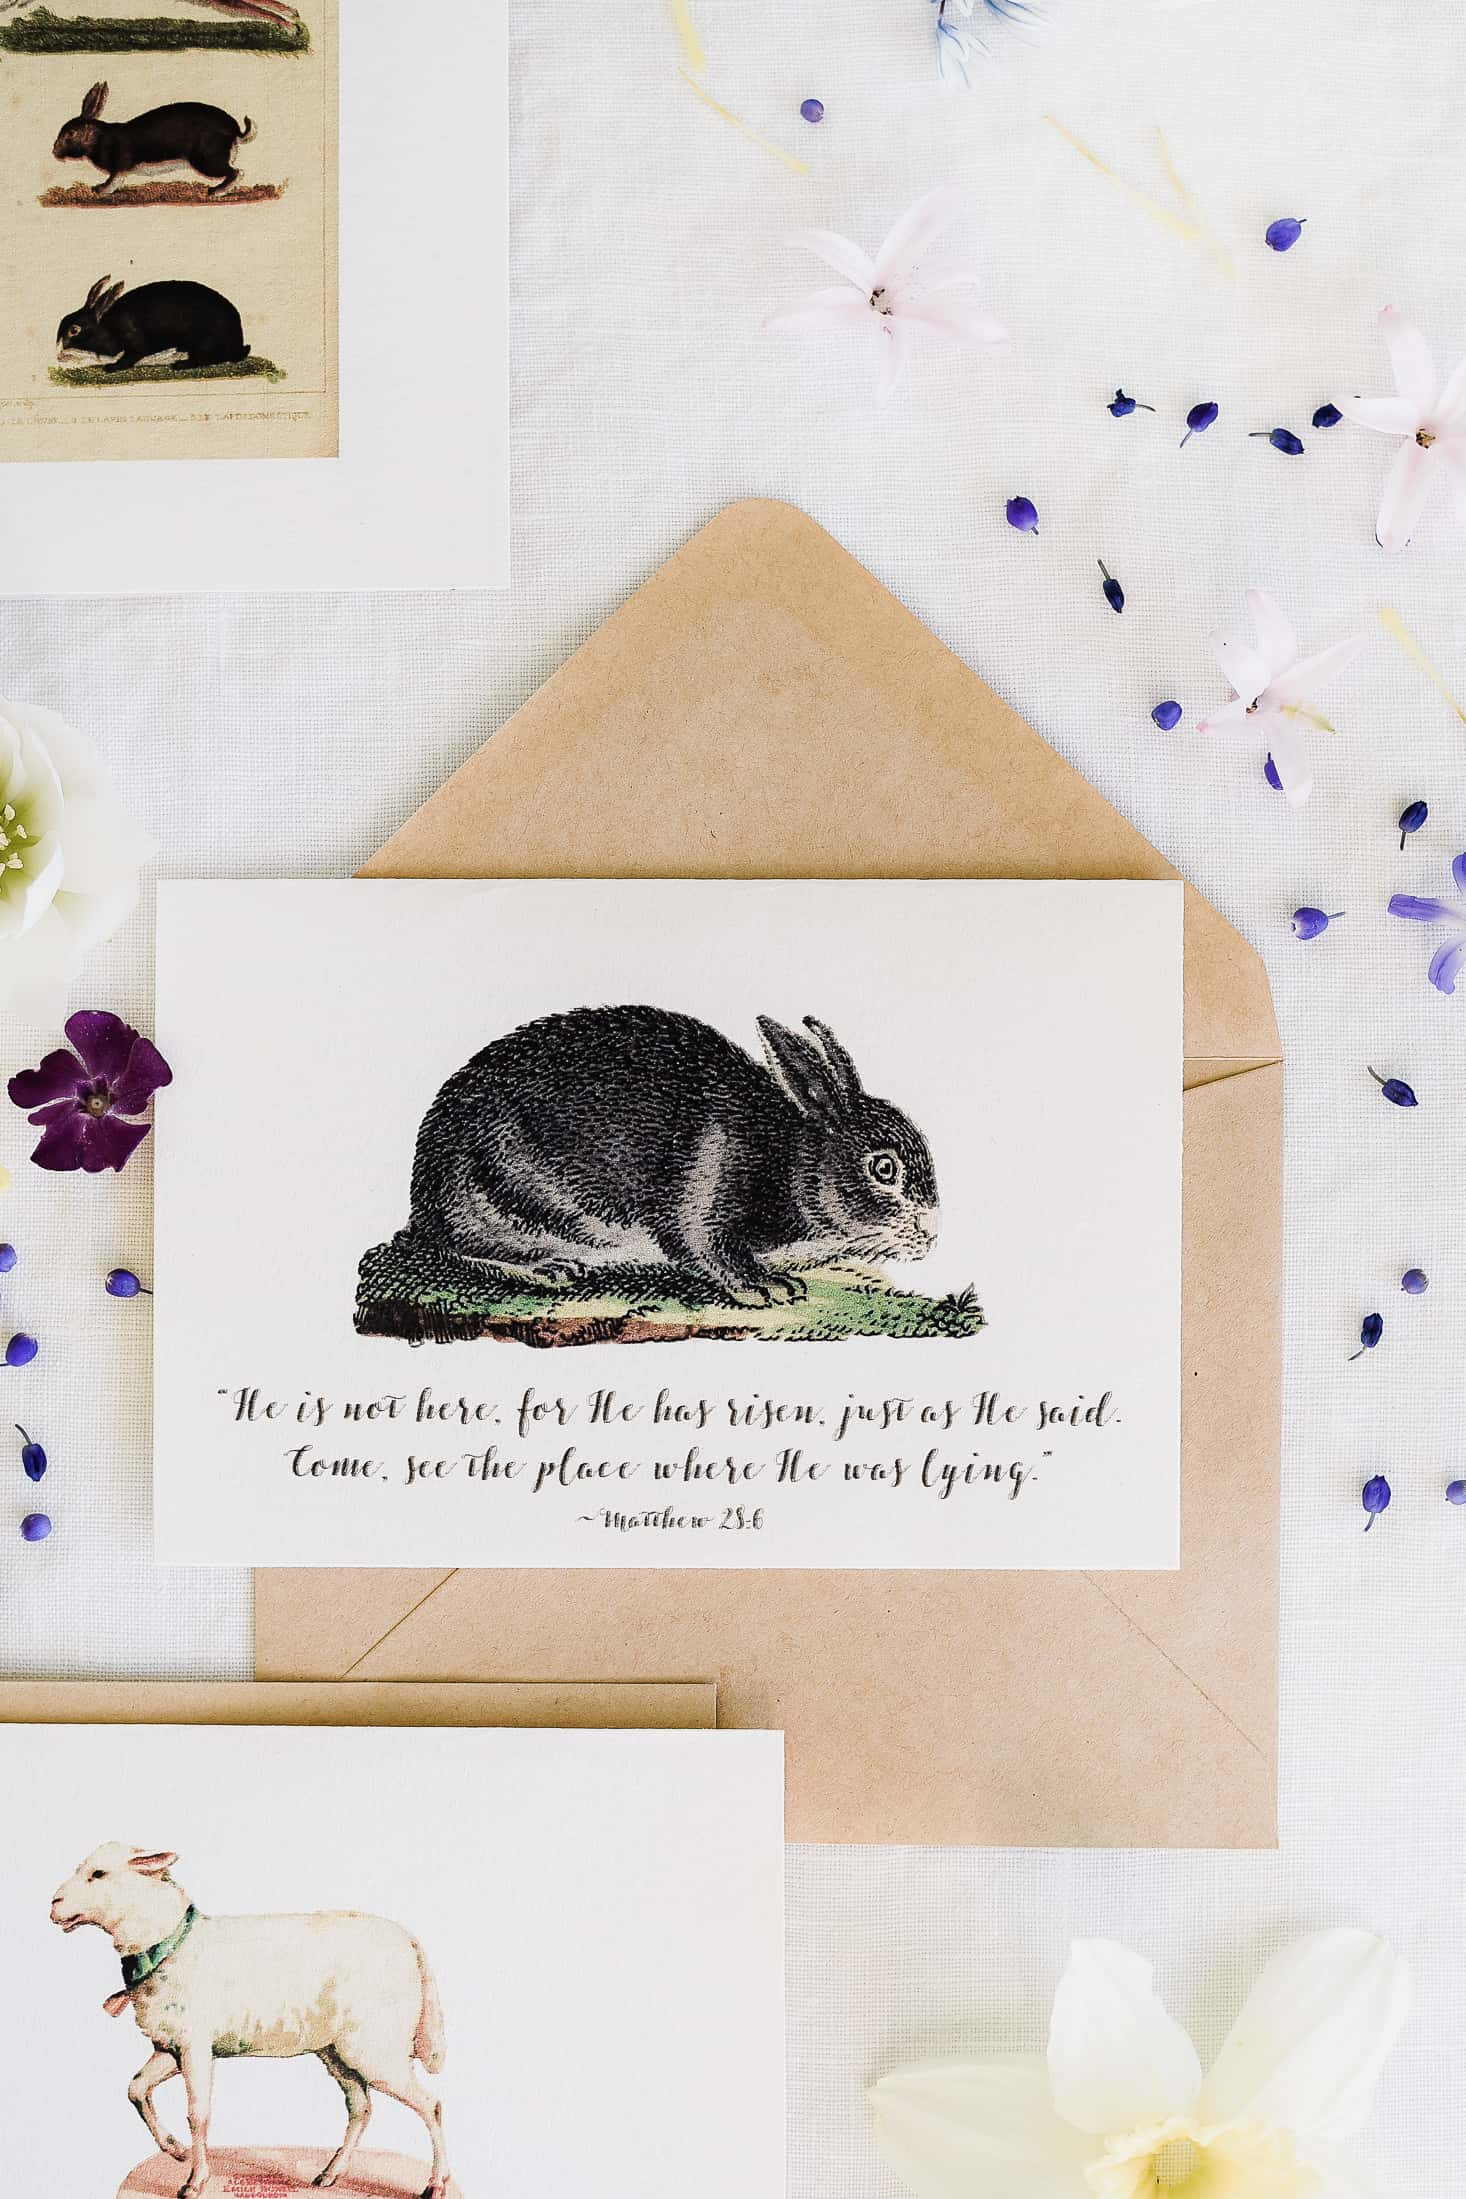 printable easter cards with rabbits, sheep, and quotes